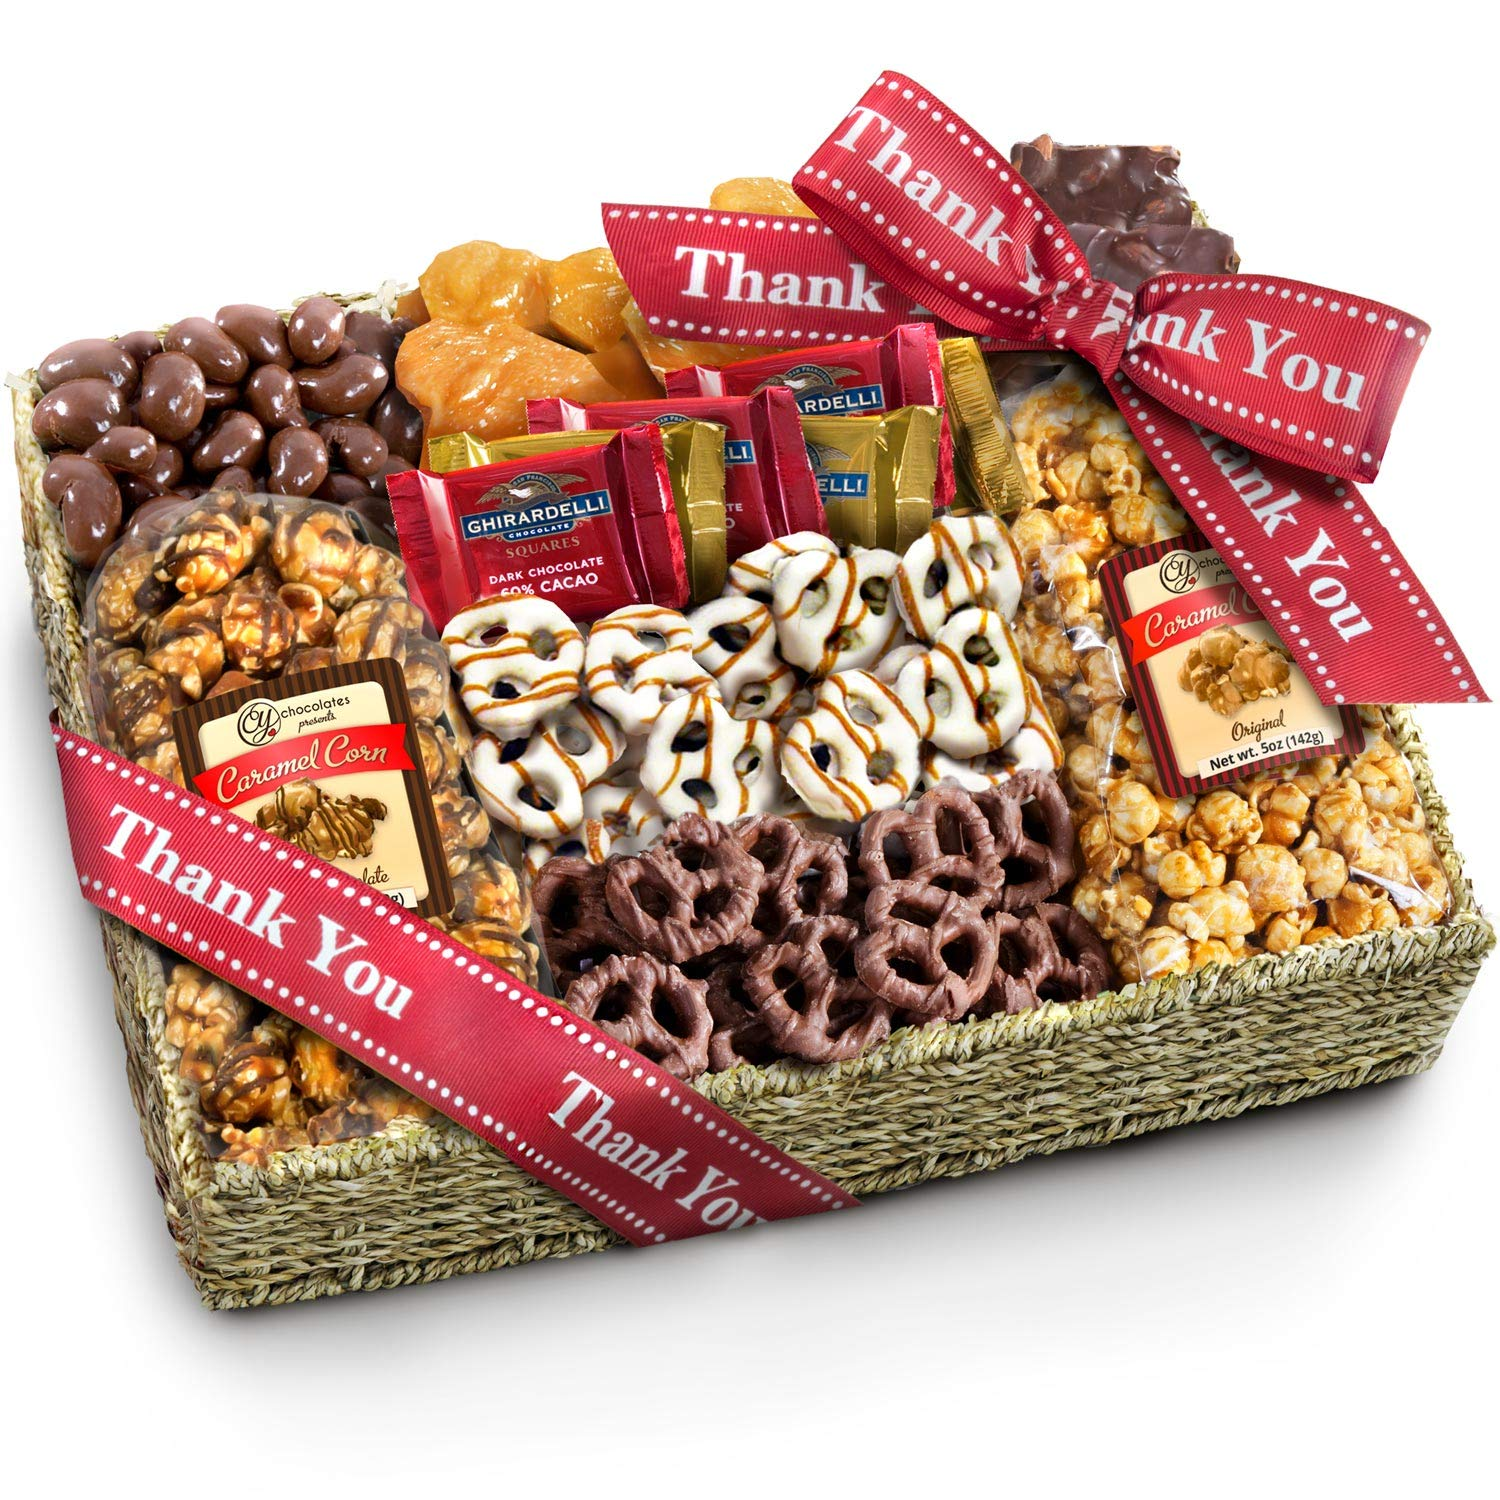 Chocolate Caramel and Crunch Grand Gift Basket Review